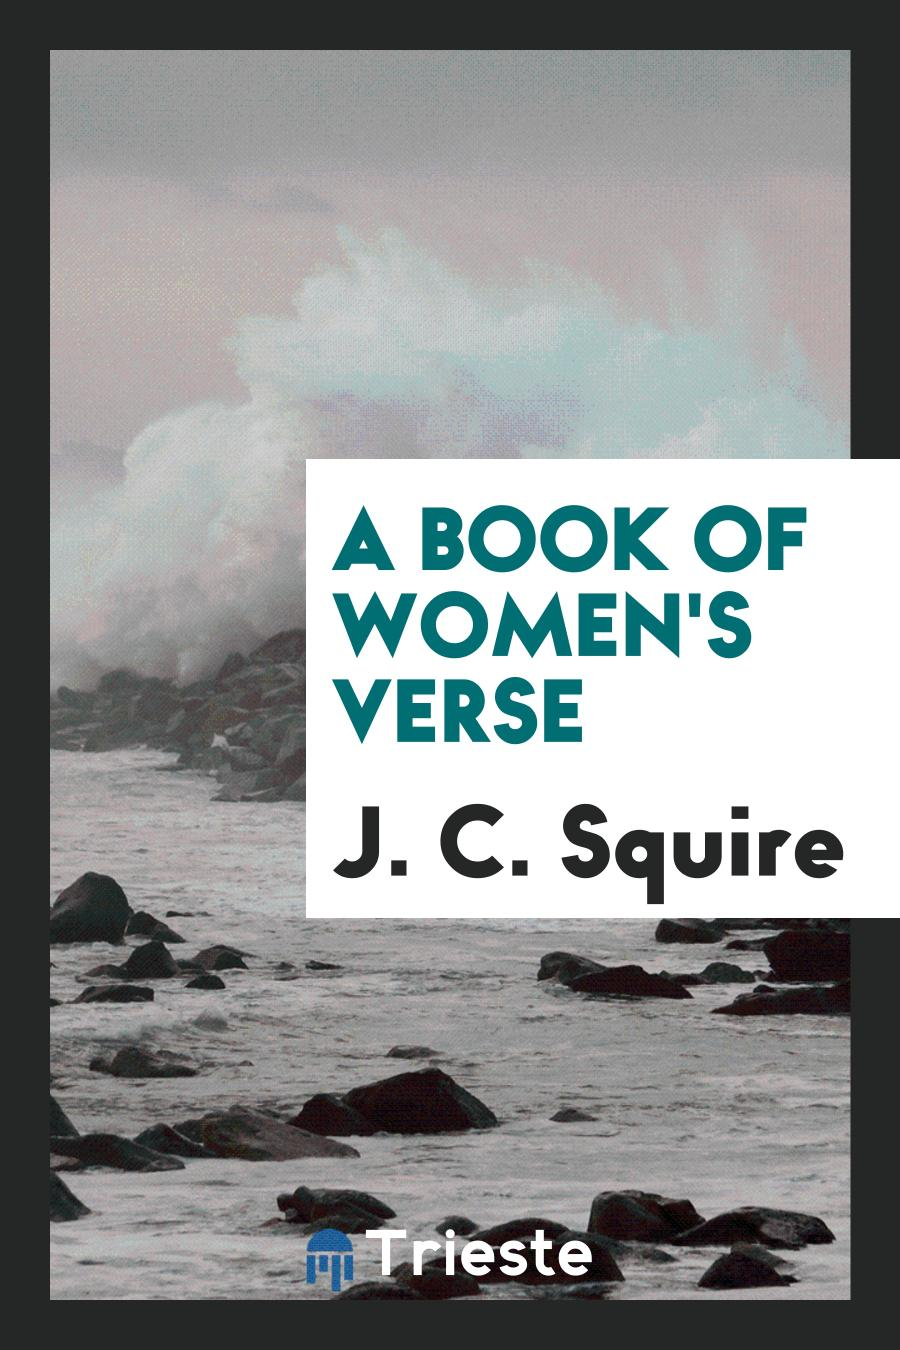 A Book of Women's Verse